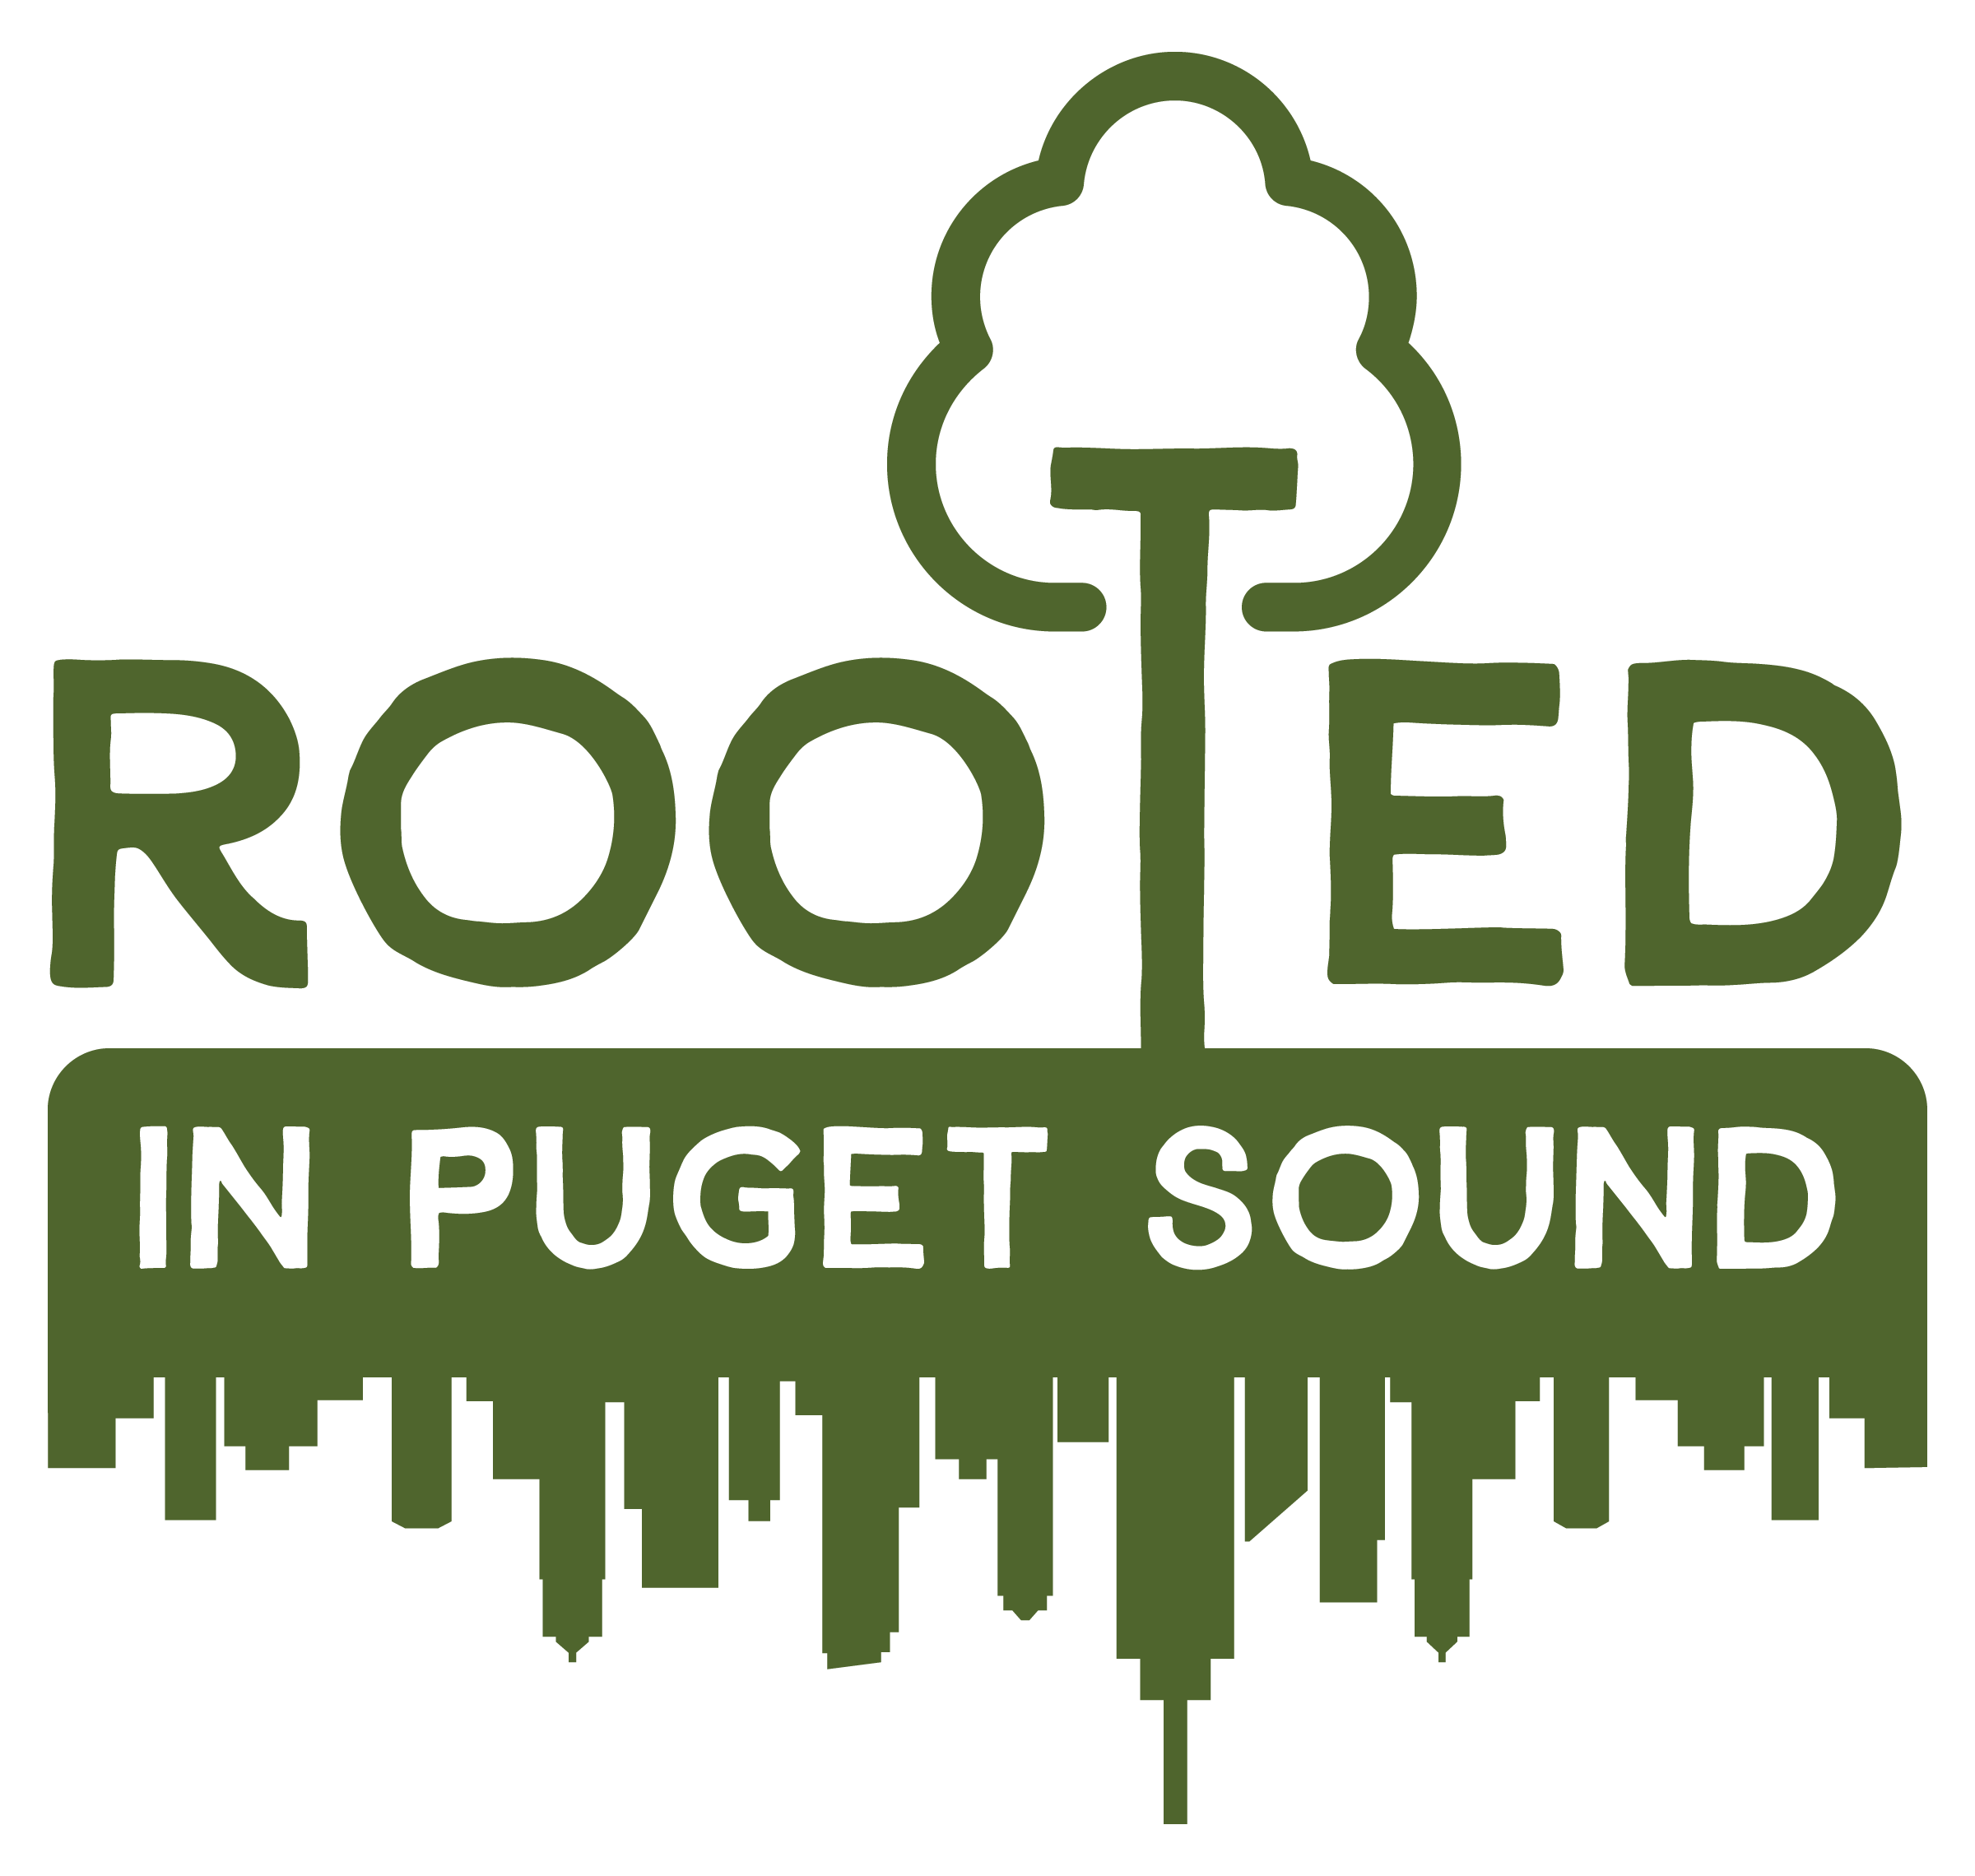 Rooted-in-PS_logo_spruce.png